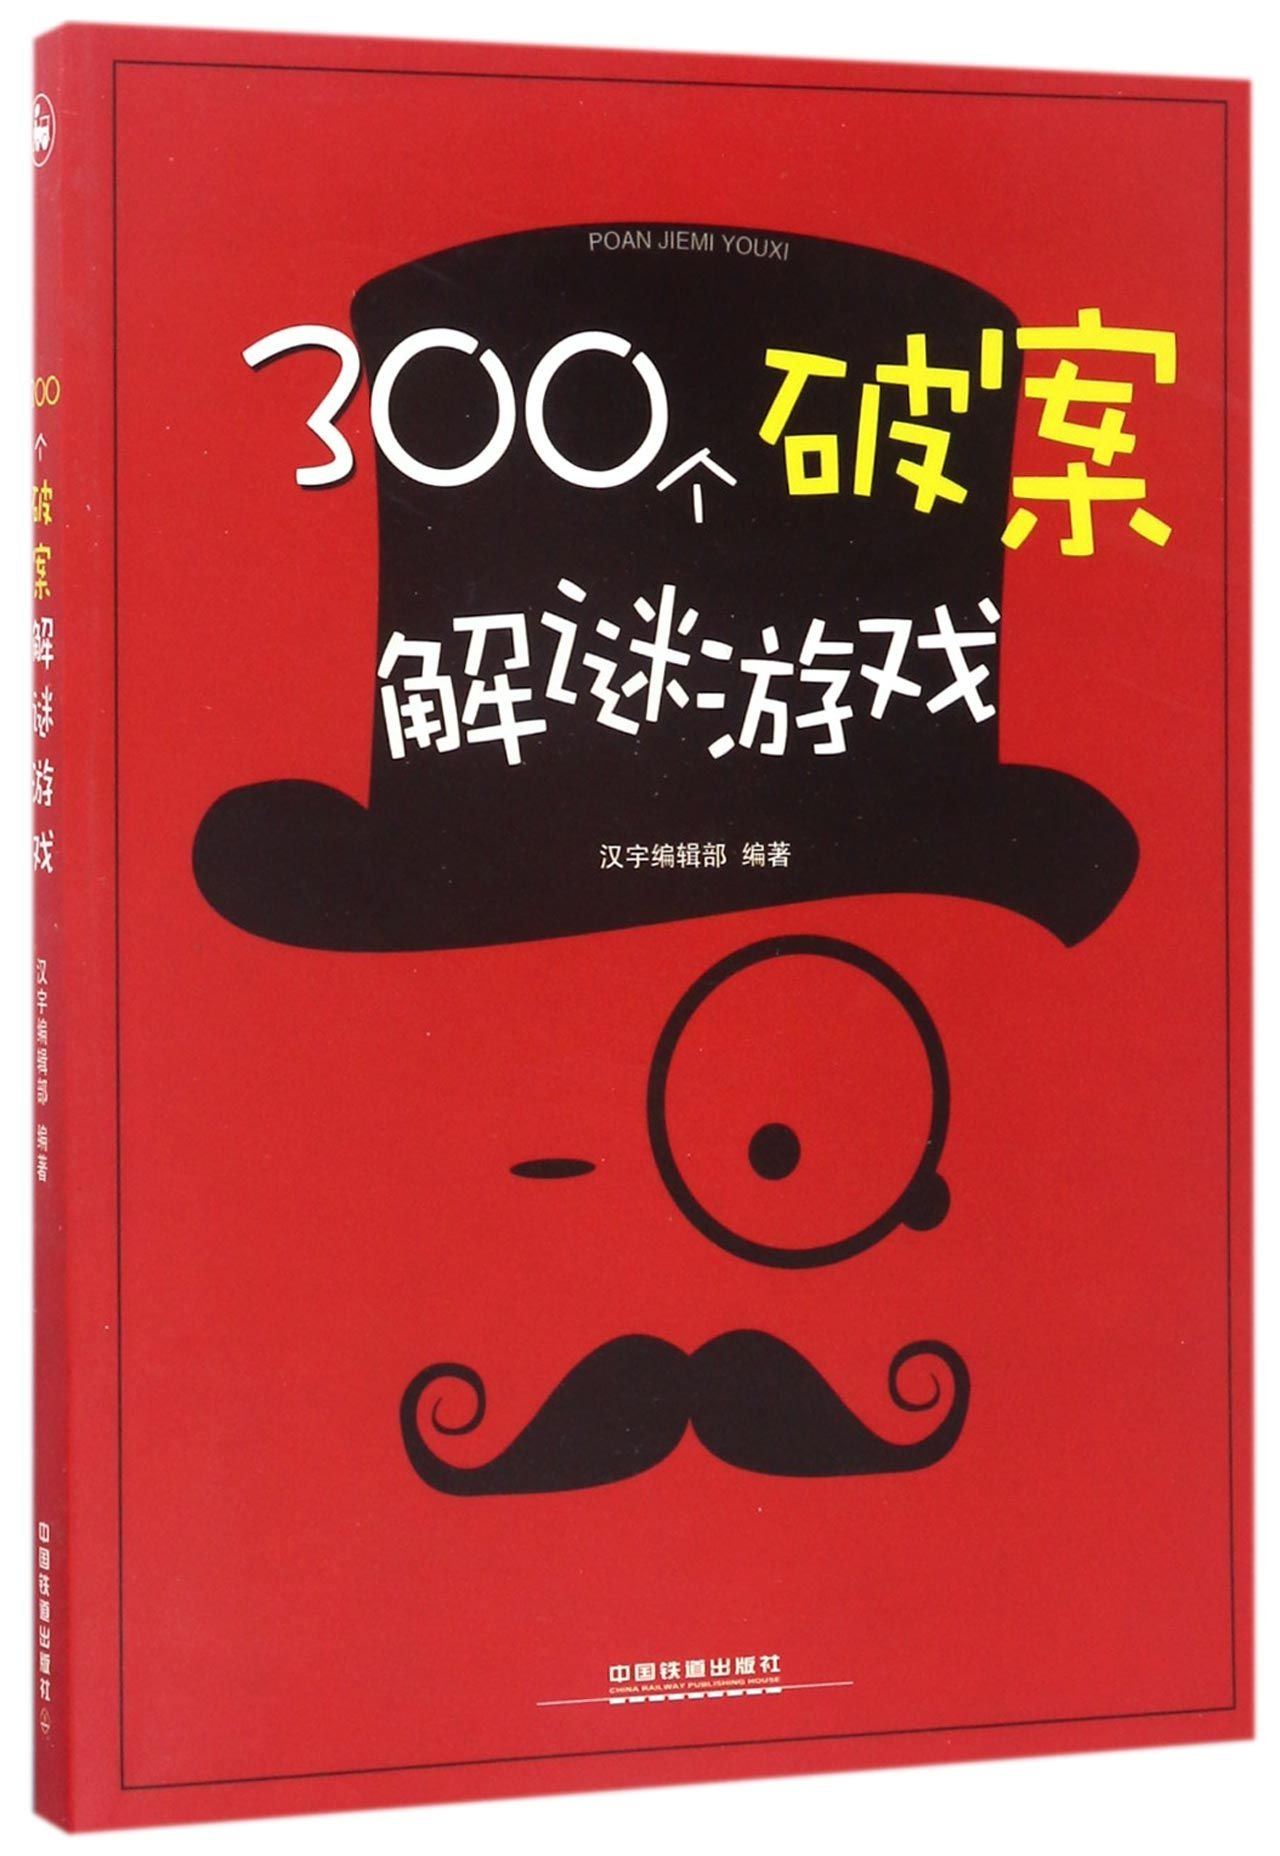 Read Online 300 Logic Reasoning Games (Chinese Edition) ebook